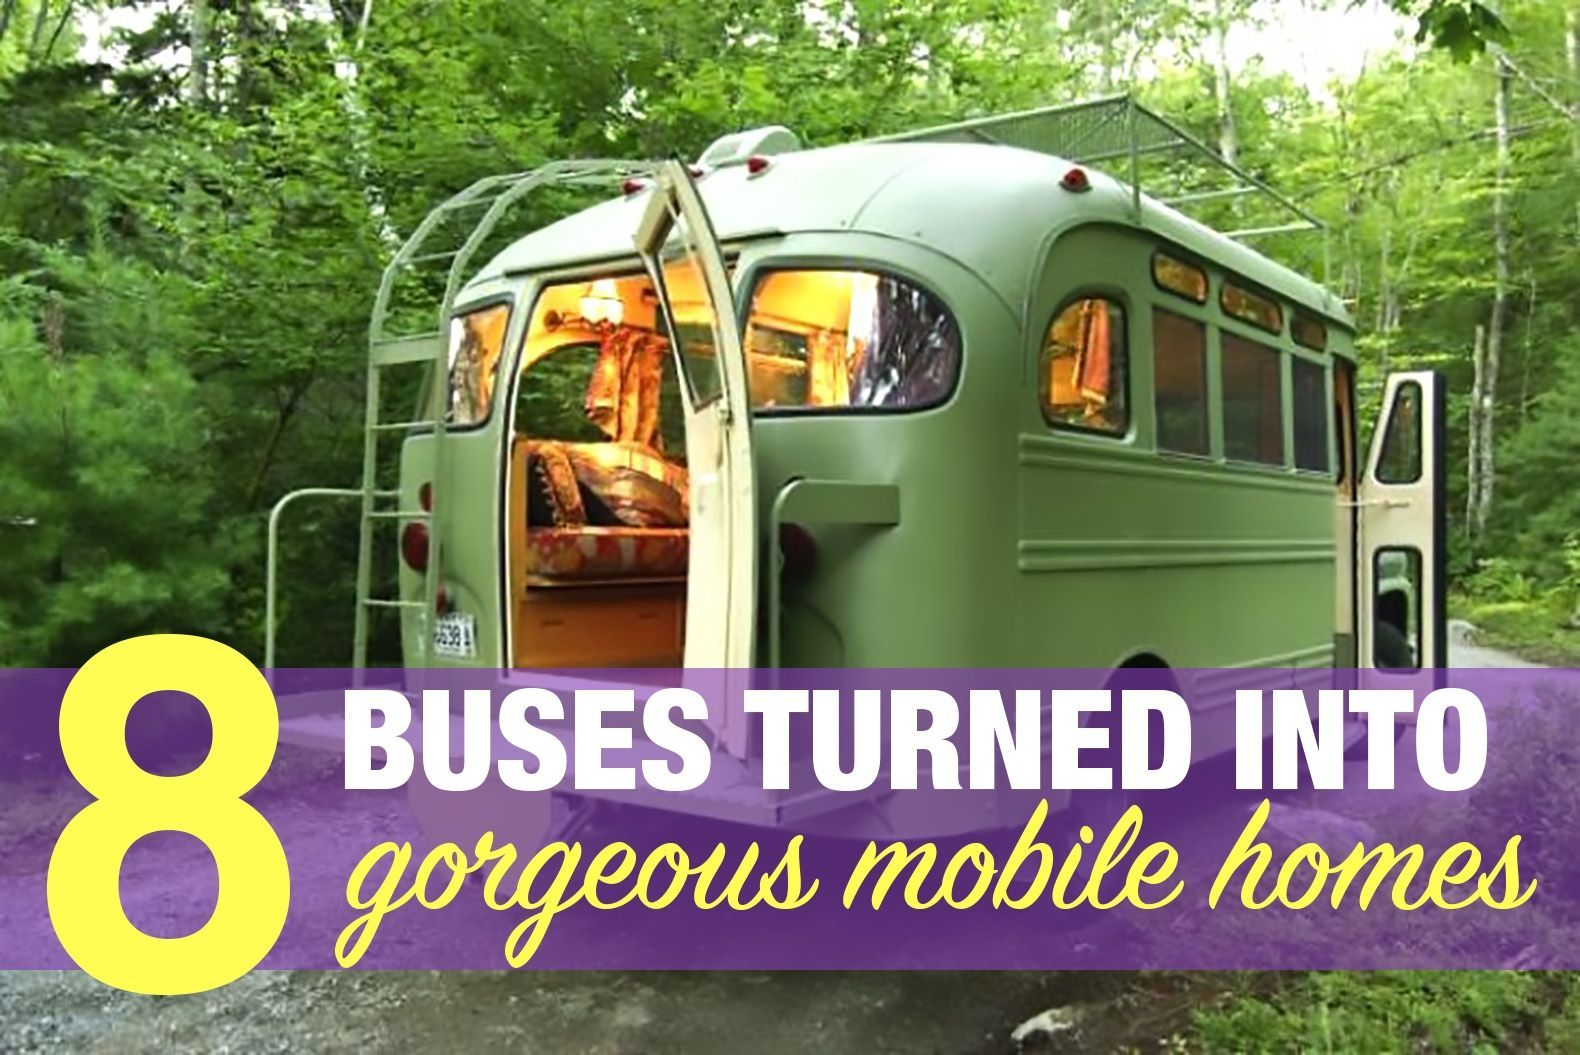 Stunning Ways To Transform Your Old Van Into A Cool Mobile Home Lifestyle By Mediumgratuit Info Old School Bus Bus House School Bus